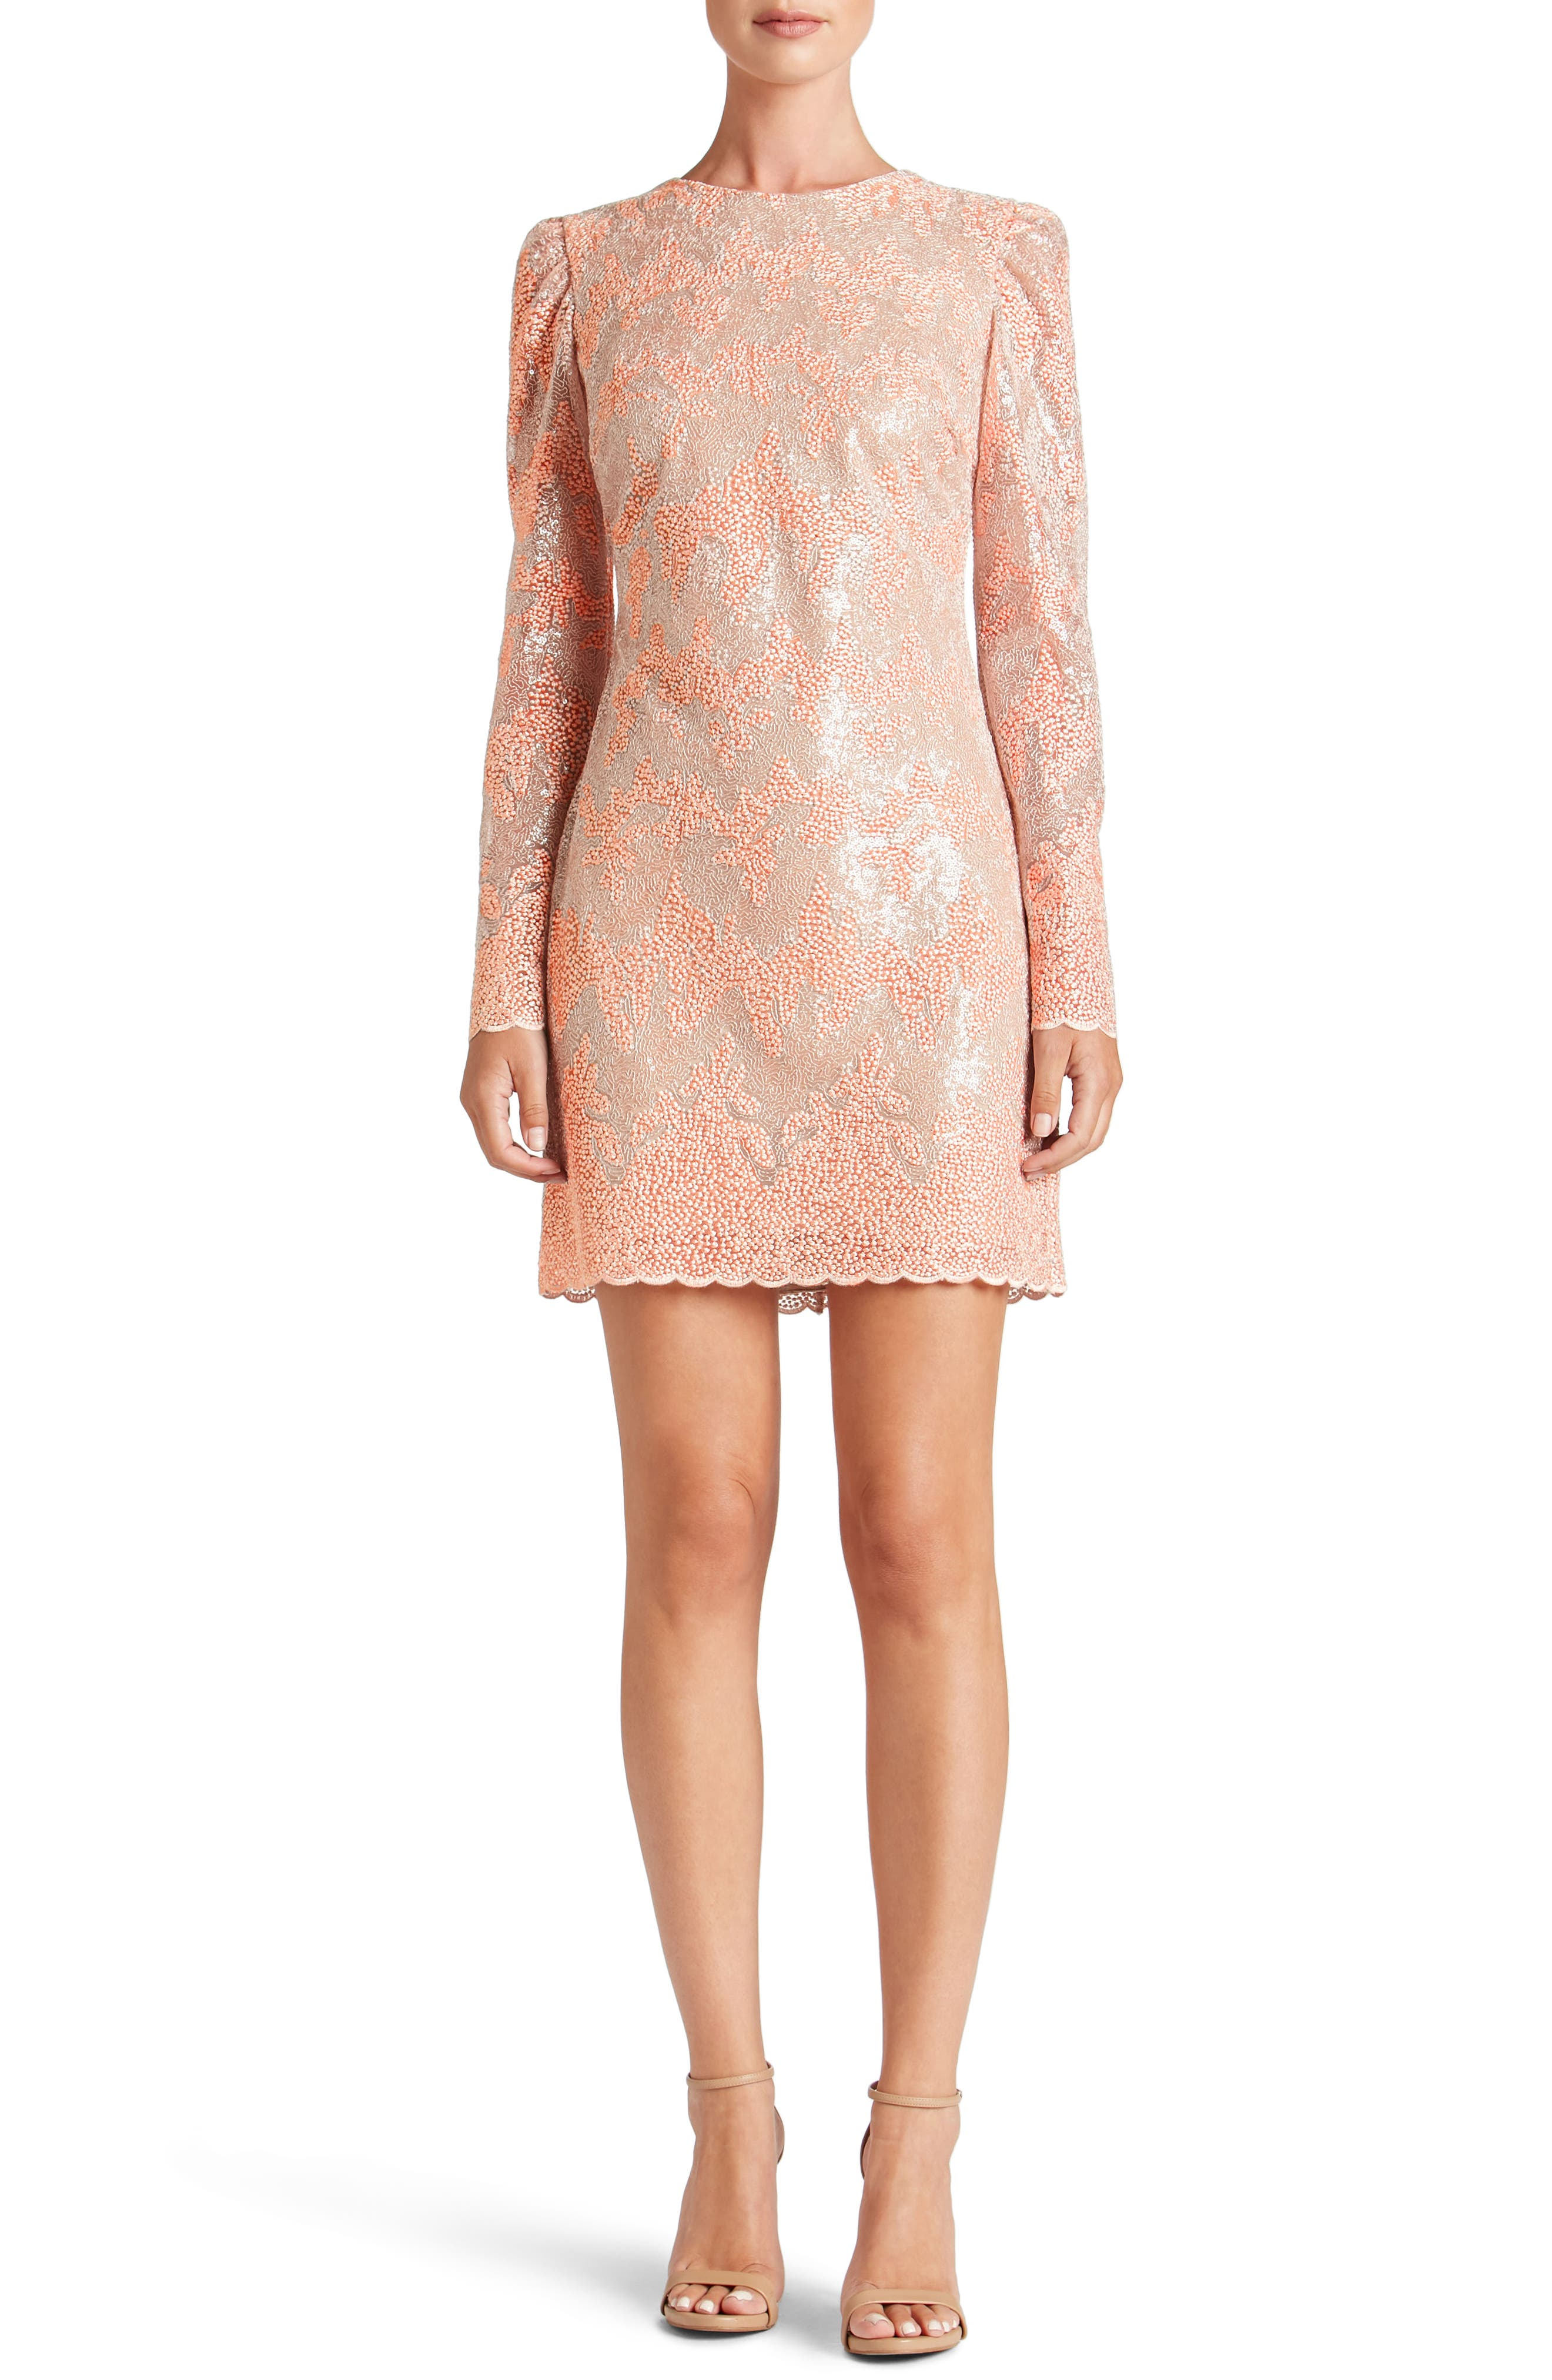 Aubry Sequin Embellished Shift Dress,                             Main thumbnail 1, color,                             Blush